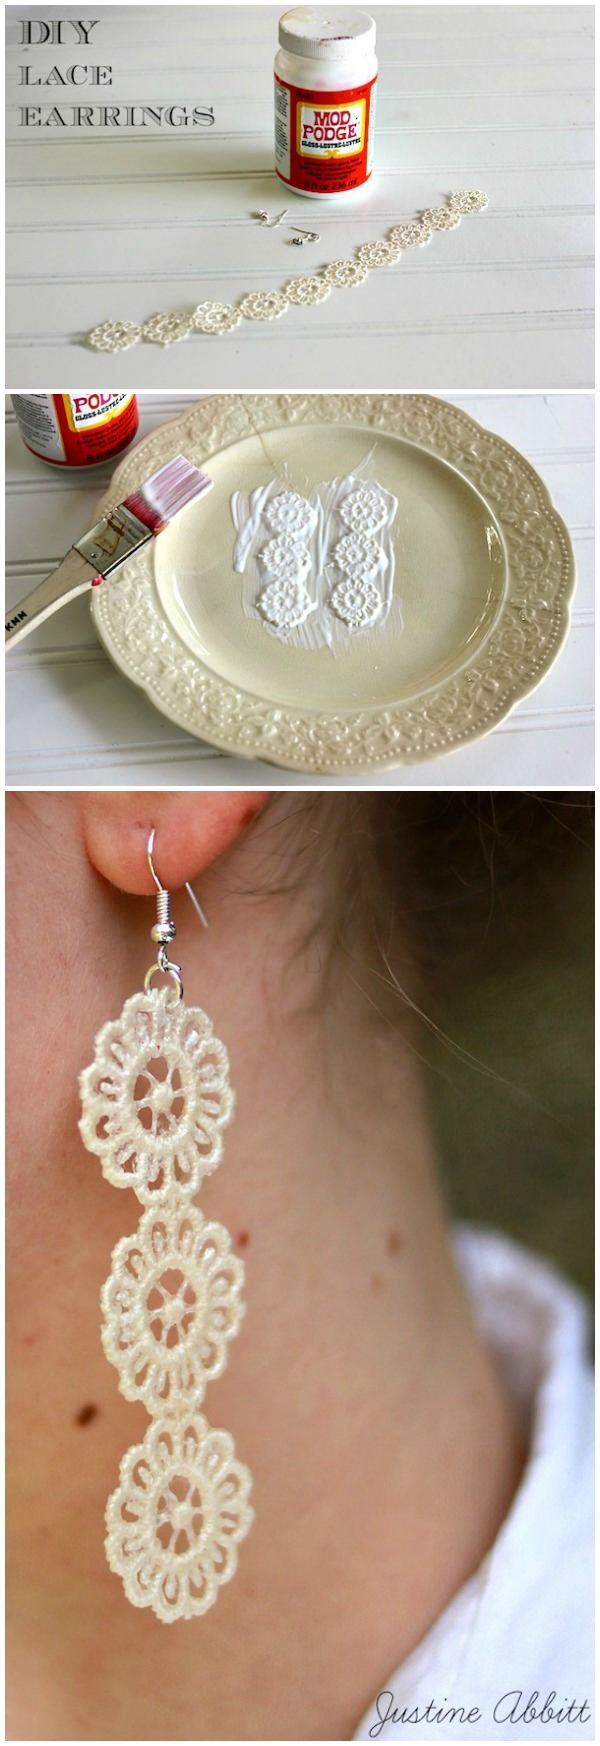 These gorgeous DIY lace earrings were made with some scraps that Justine had in her stash - they're so easy and make great gifts! via @modpodgerocks